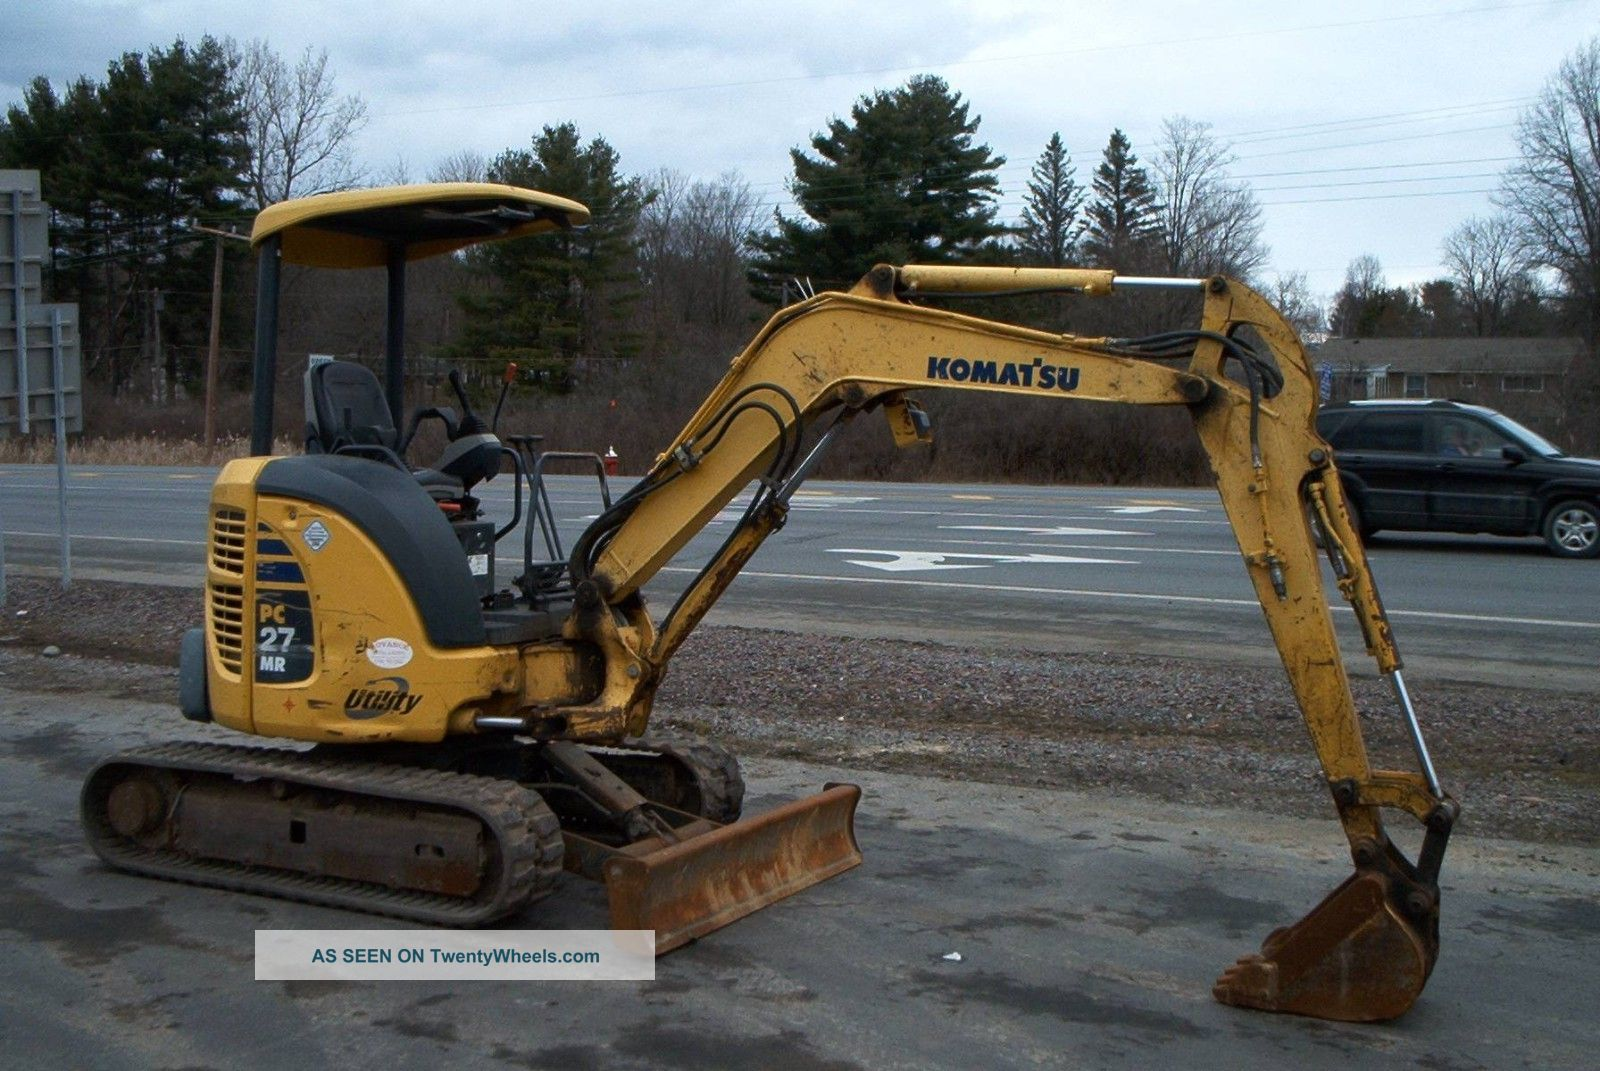 Komatsu Pc27mr - 2 (2006) Excavators photo